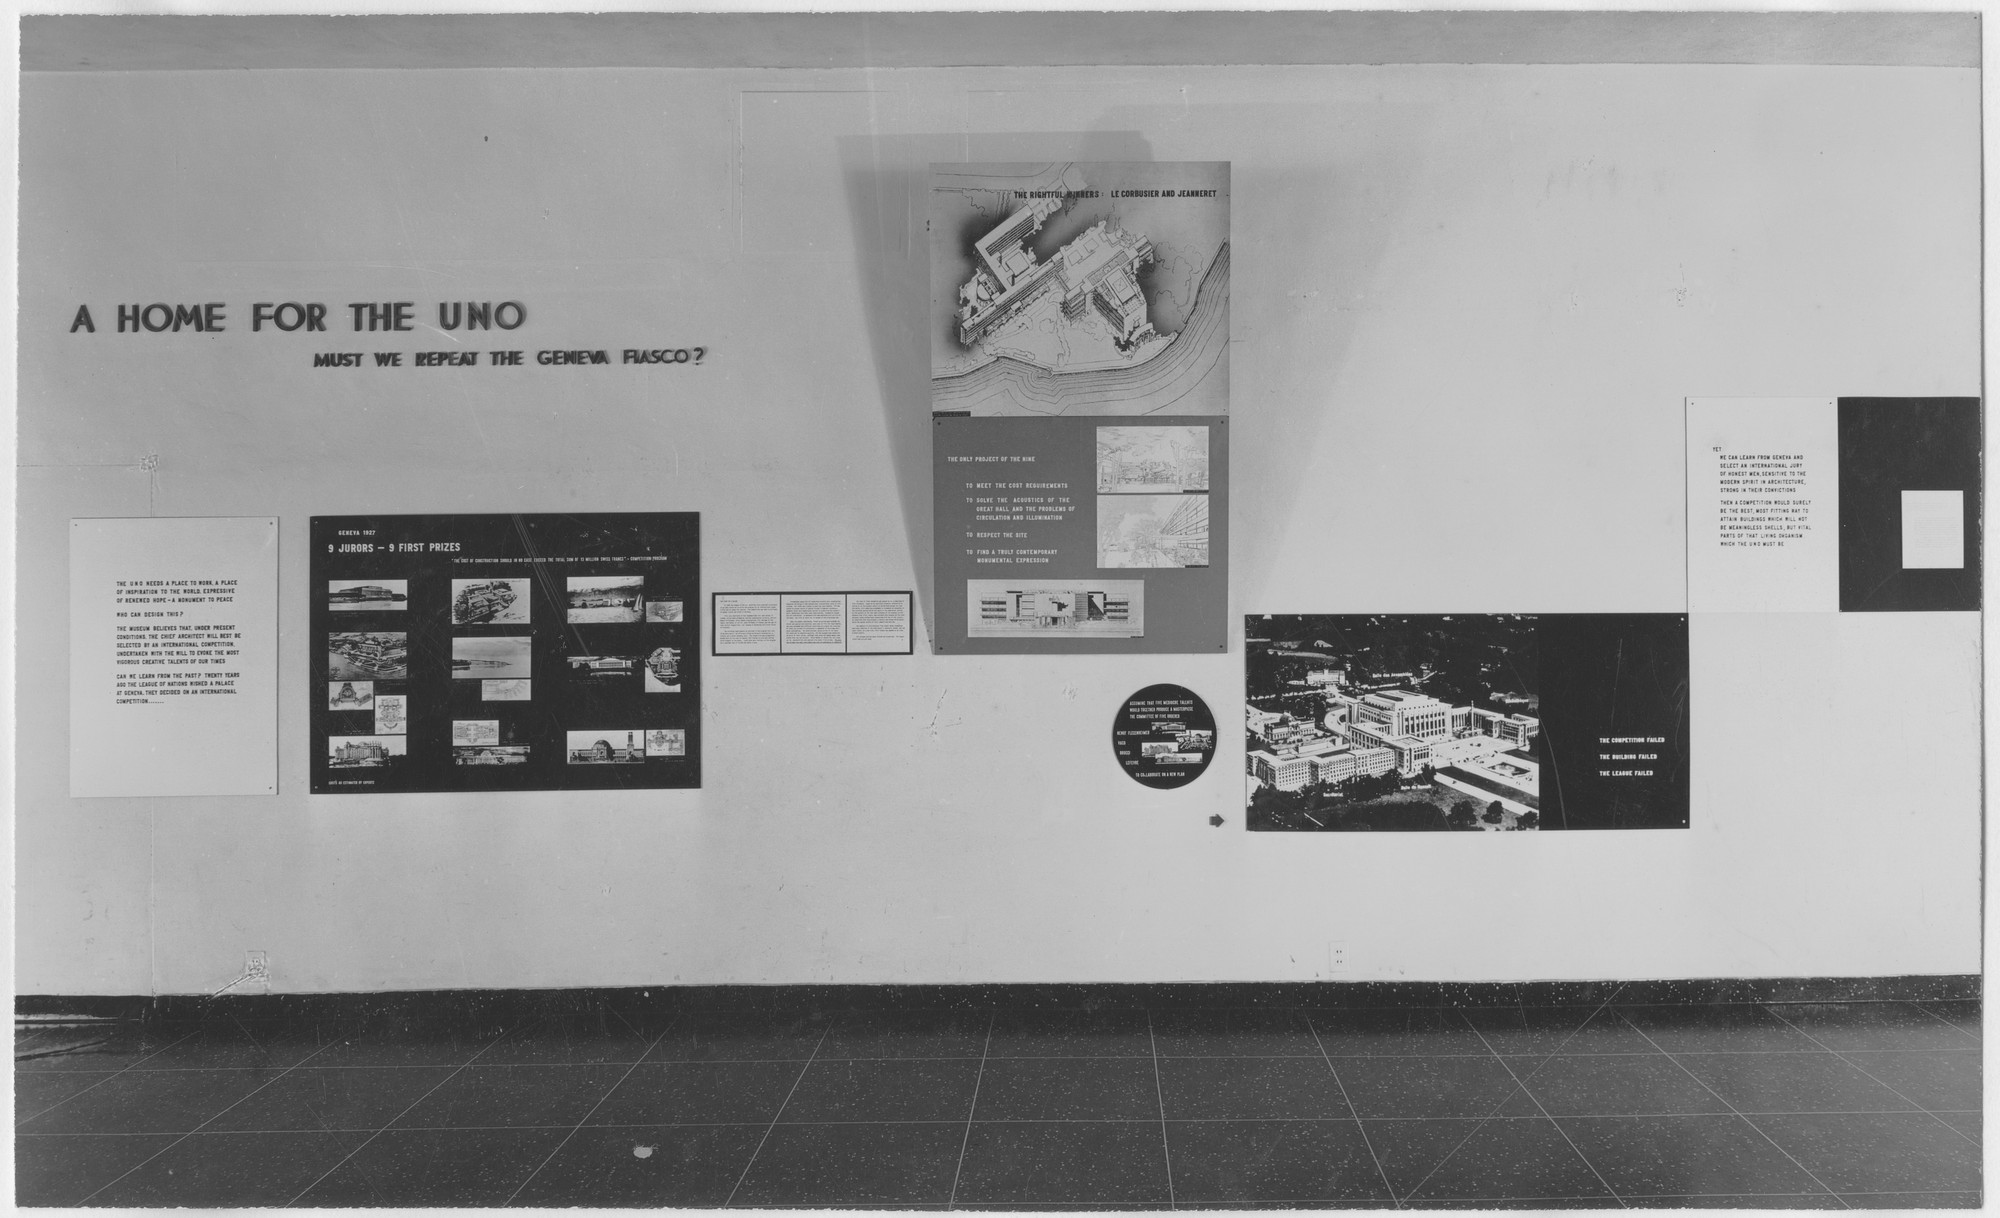 "Installation view of the exhibition, ""A Home for U.N.O.:  Must We Repeat the Geneva Fiasco?"" February 5, 1946–March 3, 1946. Photographic Archive. The Museum of Modern Art Archives, New York. IN309.1. Photograph by Soichi Sunami."